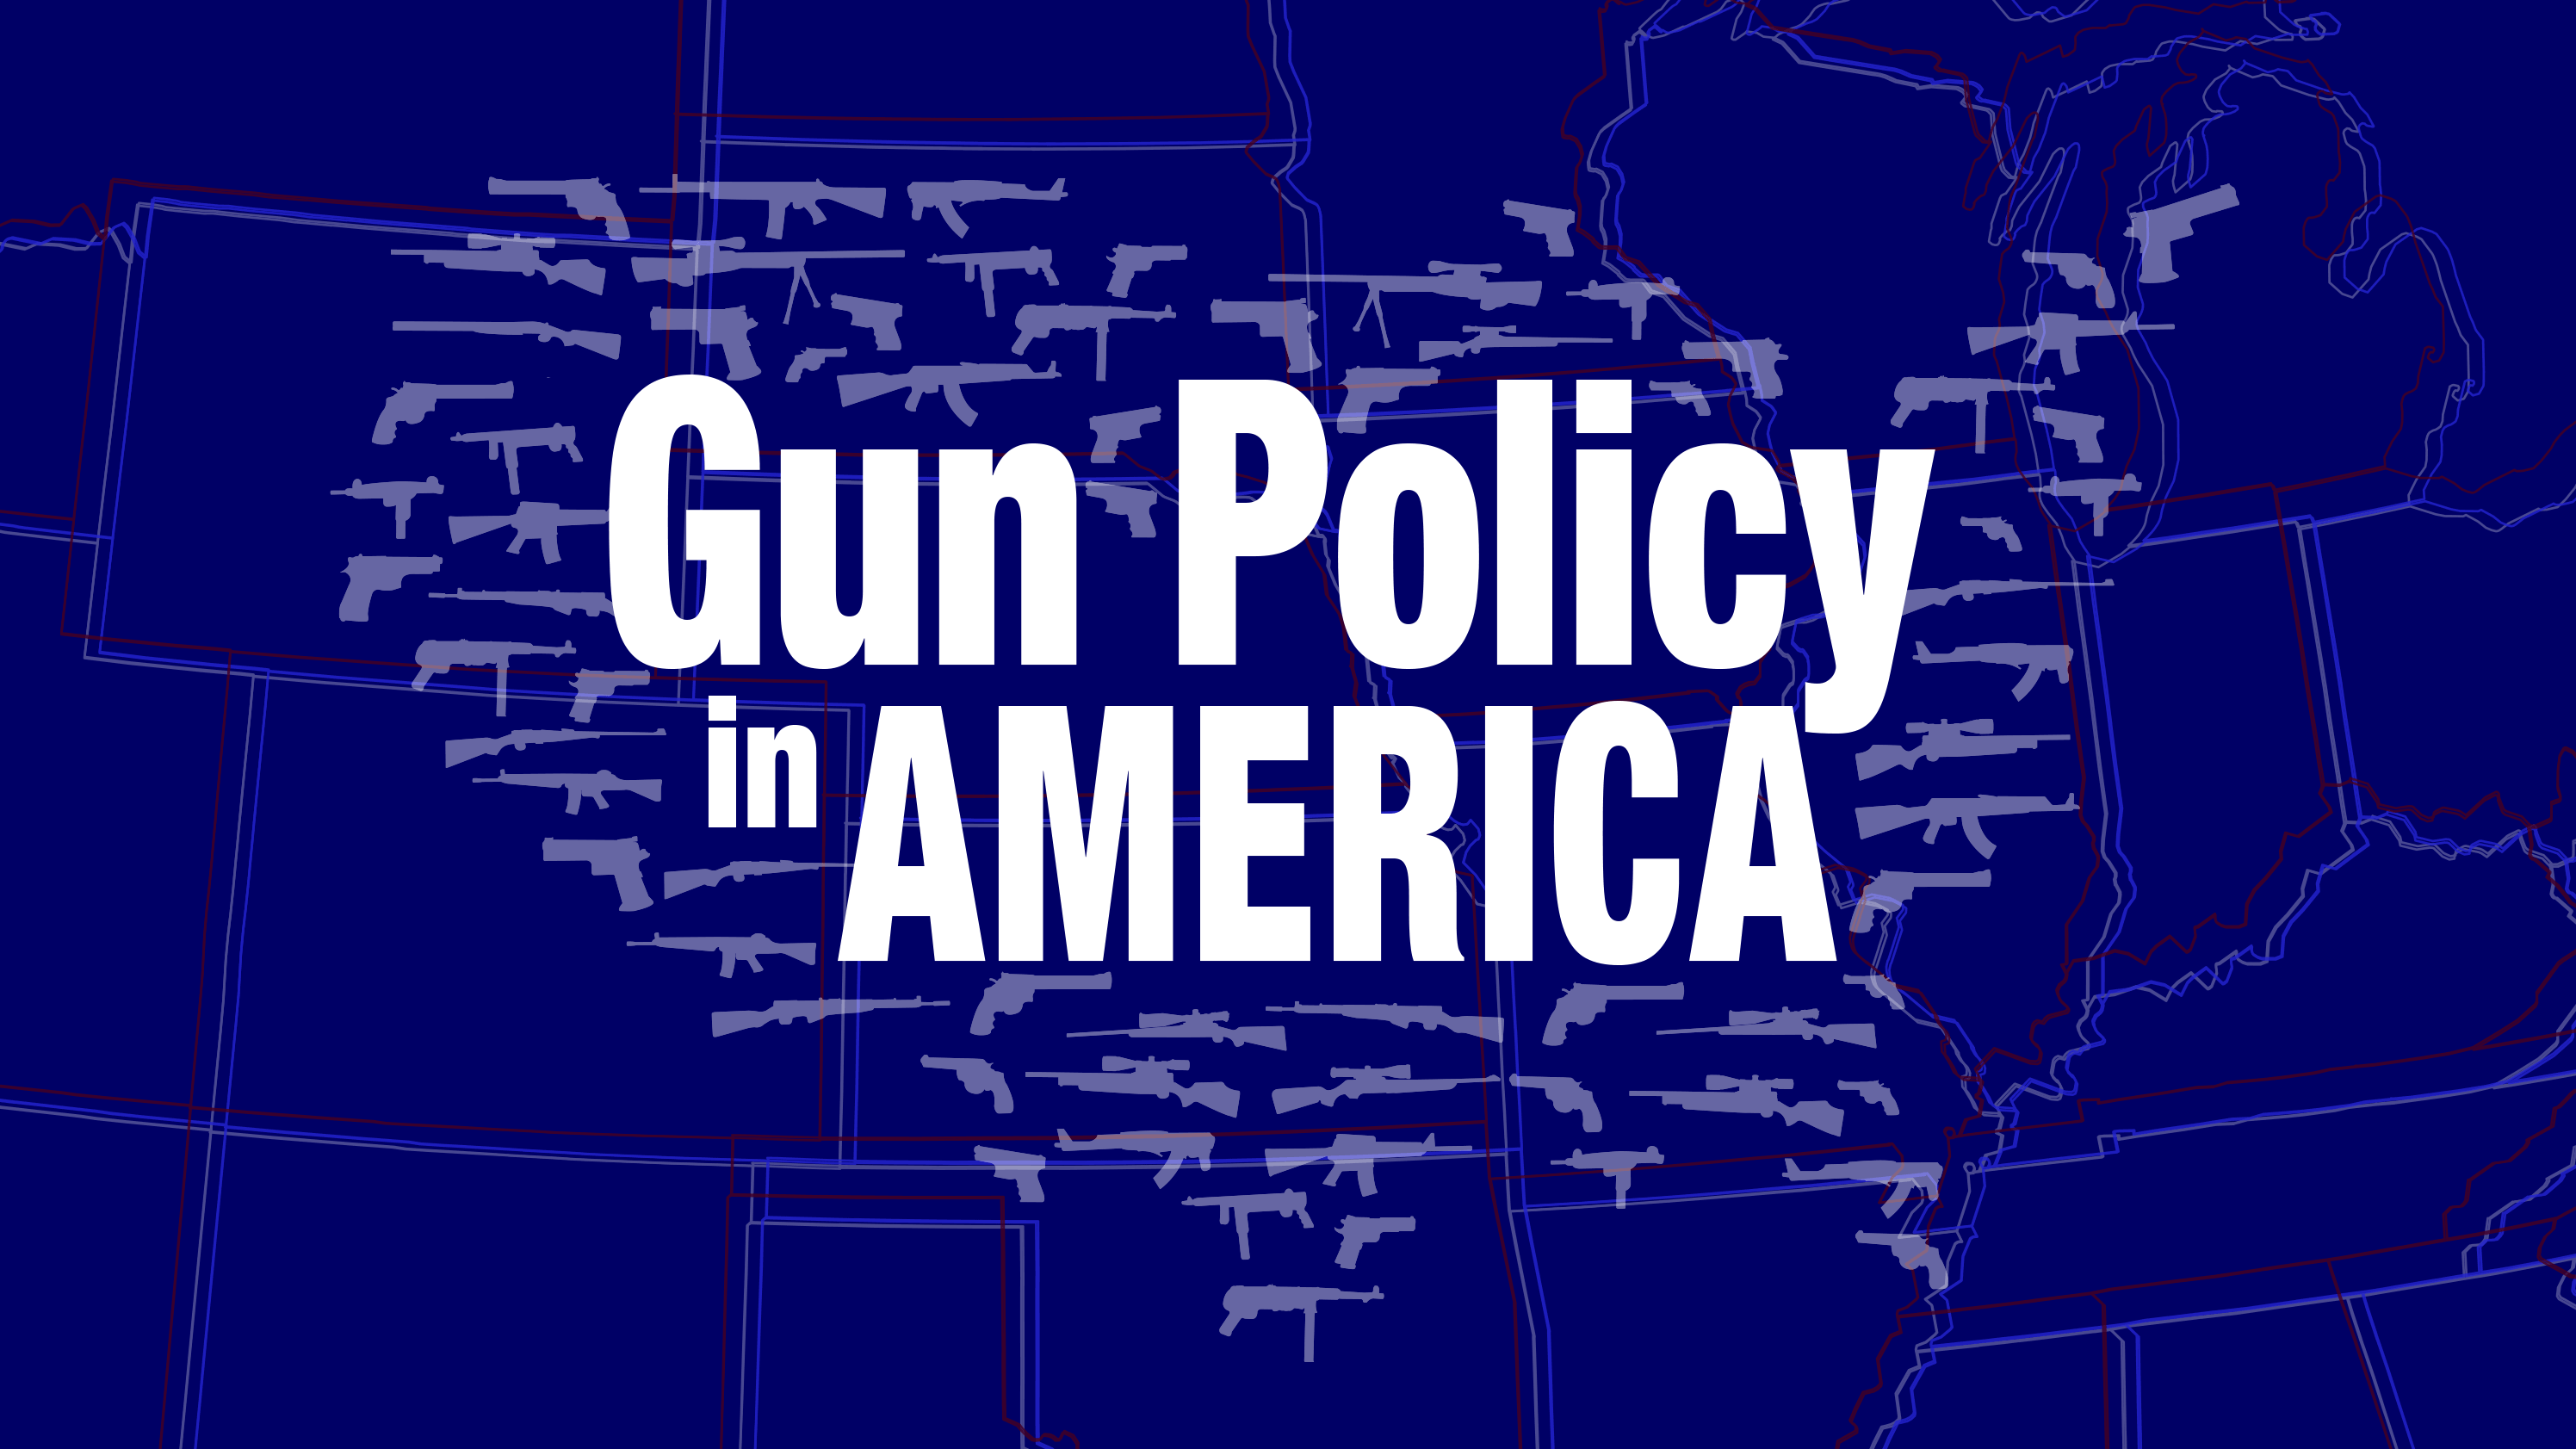 RAND Gun Policy in America logo